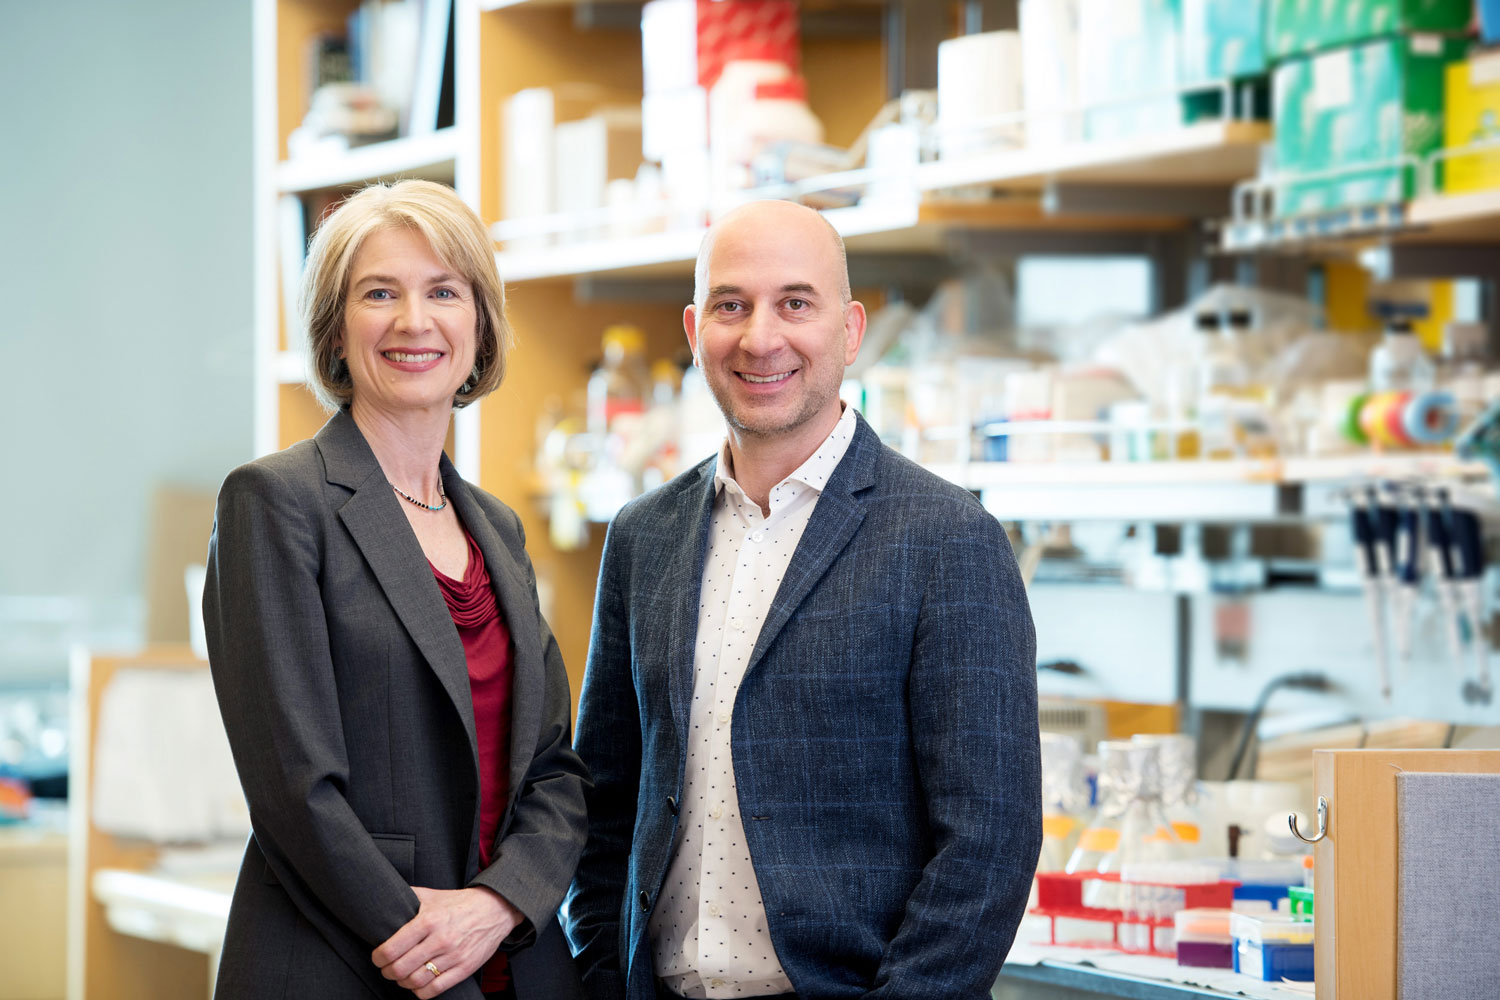 New CRISPR Lab to Accelerate Drug Discovery, Advance Genomic